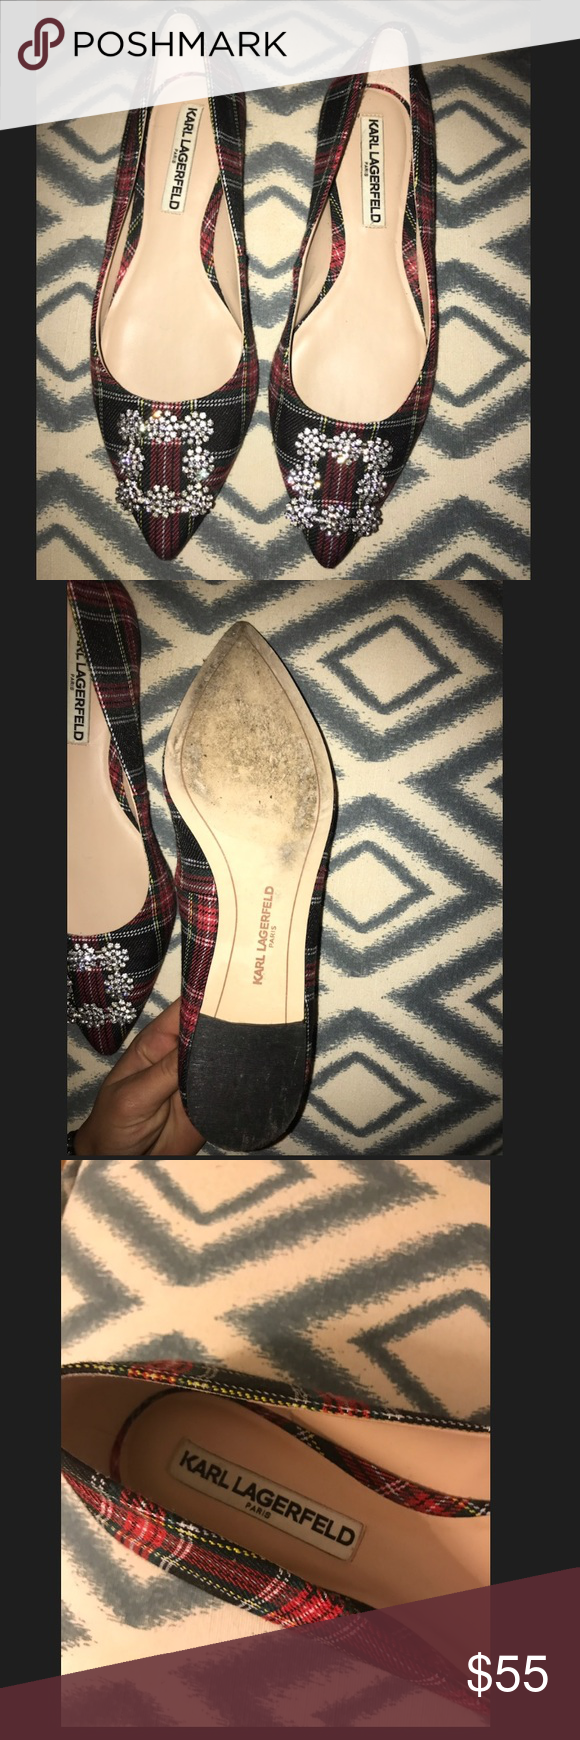 """23cdc6550e53 Karl Lagerfeld size 7 """"Nara"""" Plaid Ballet Flats Worn literally once at an  event"""